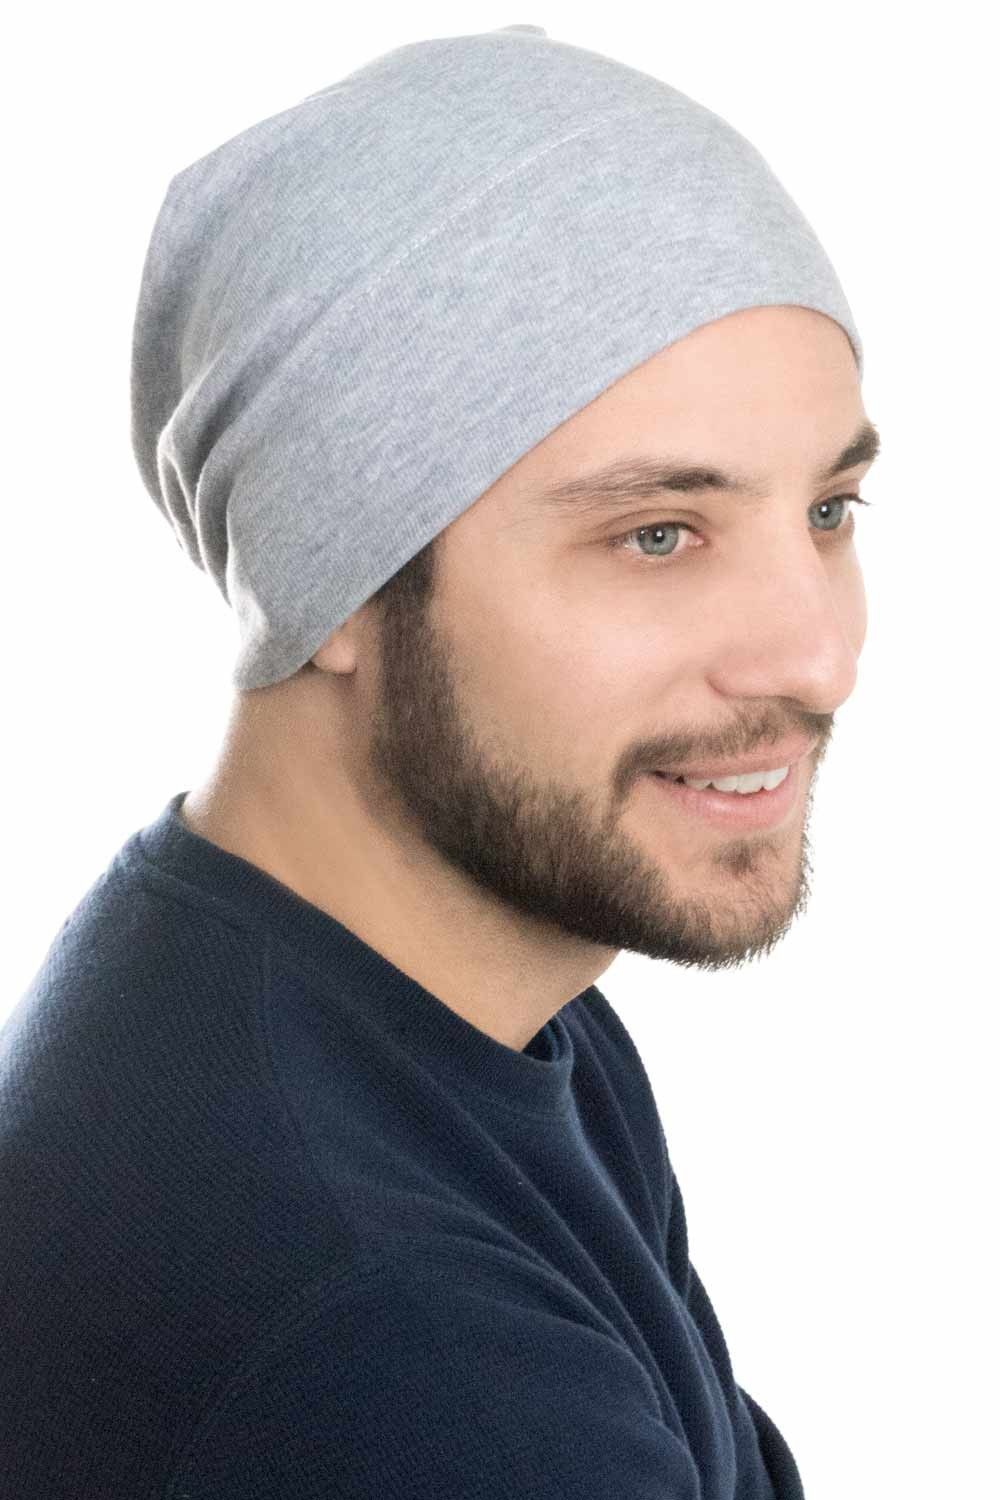 c09478946b987a Hats for Guys | Mens Relaxed Cotton Beanie in 2019 | Chemo headwear ...